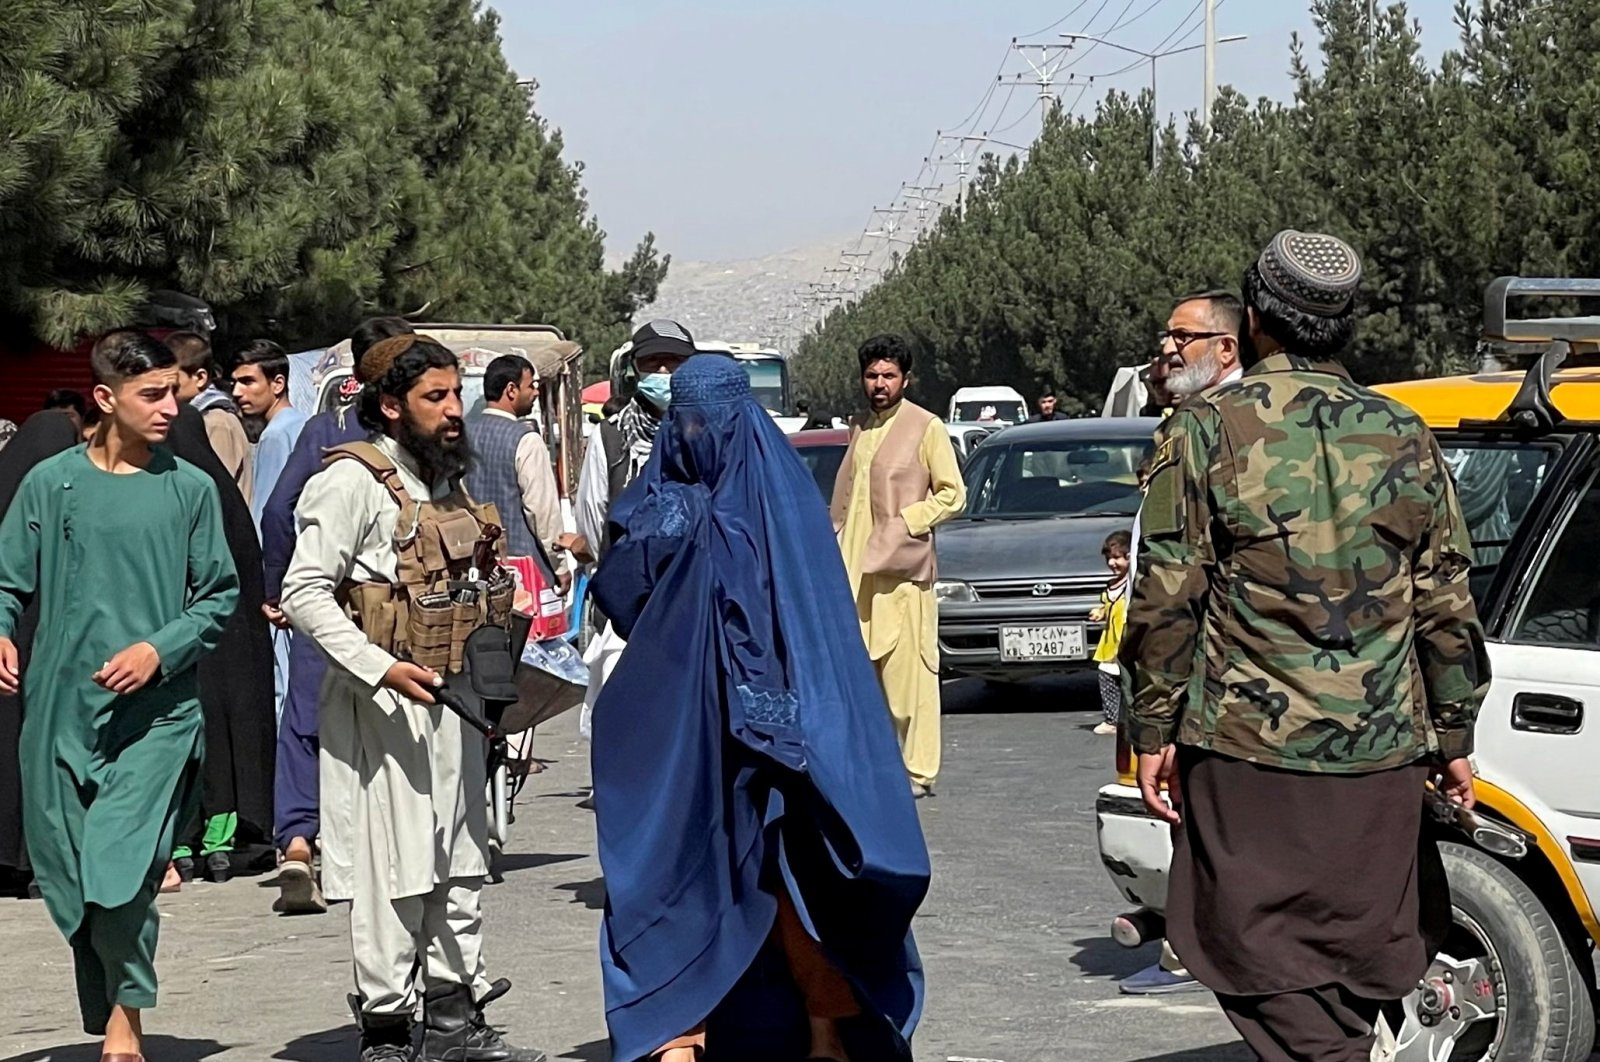 Taliban forces block the roads around the airport, while a woman wearing a burqa passes by, in Kabul, Afghanistan, Aug. 27, 2021. (Reuters Photo)